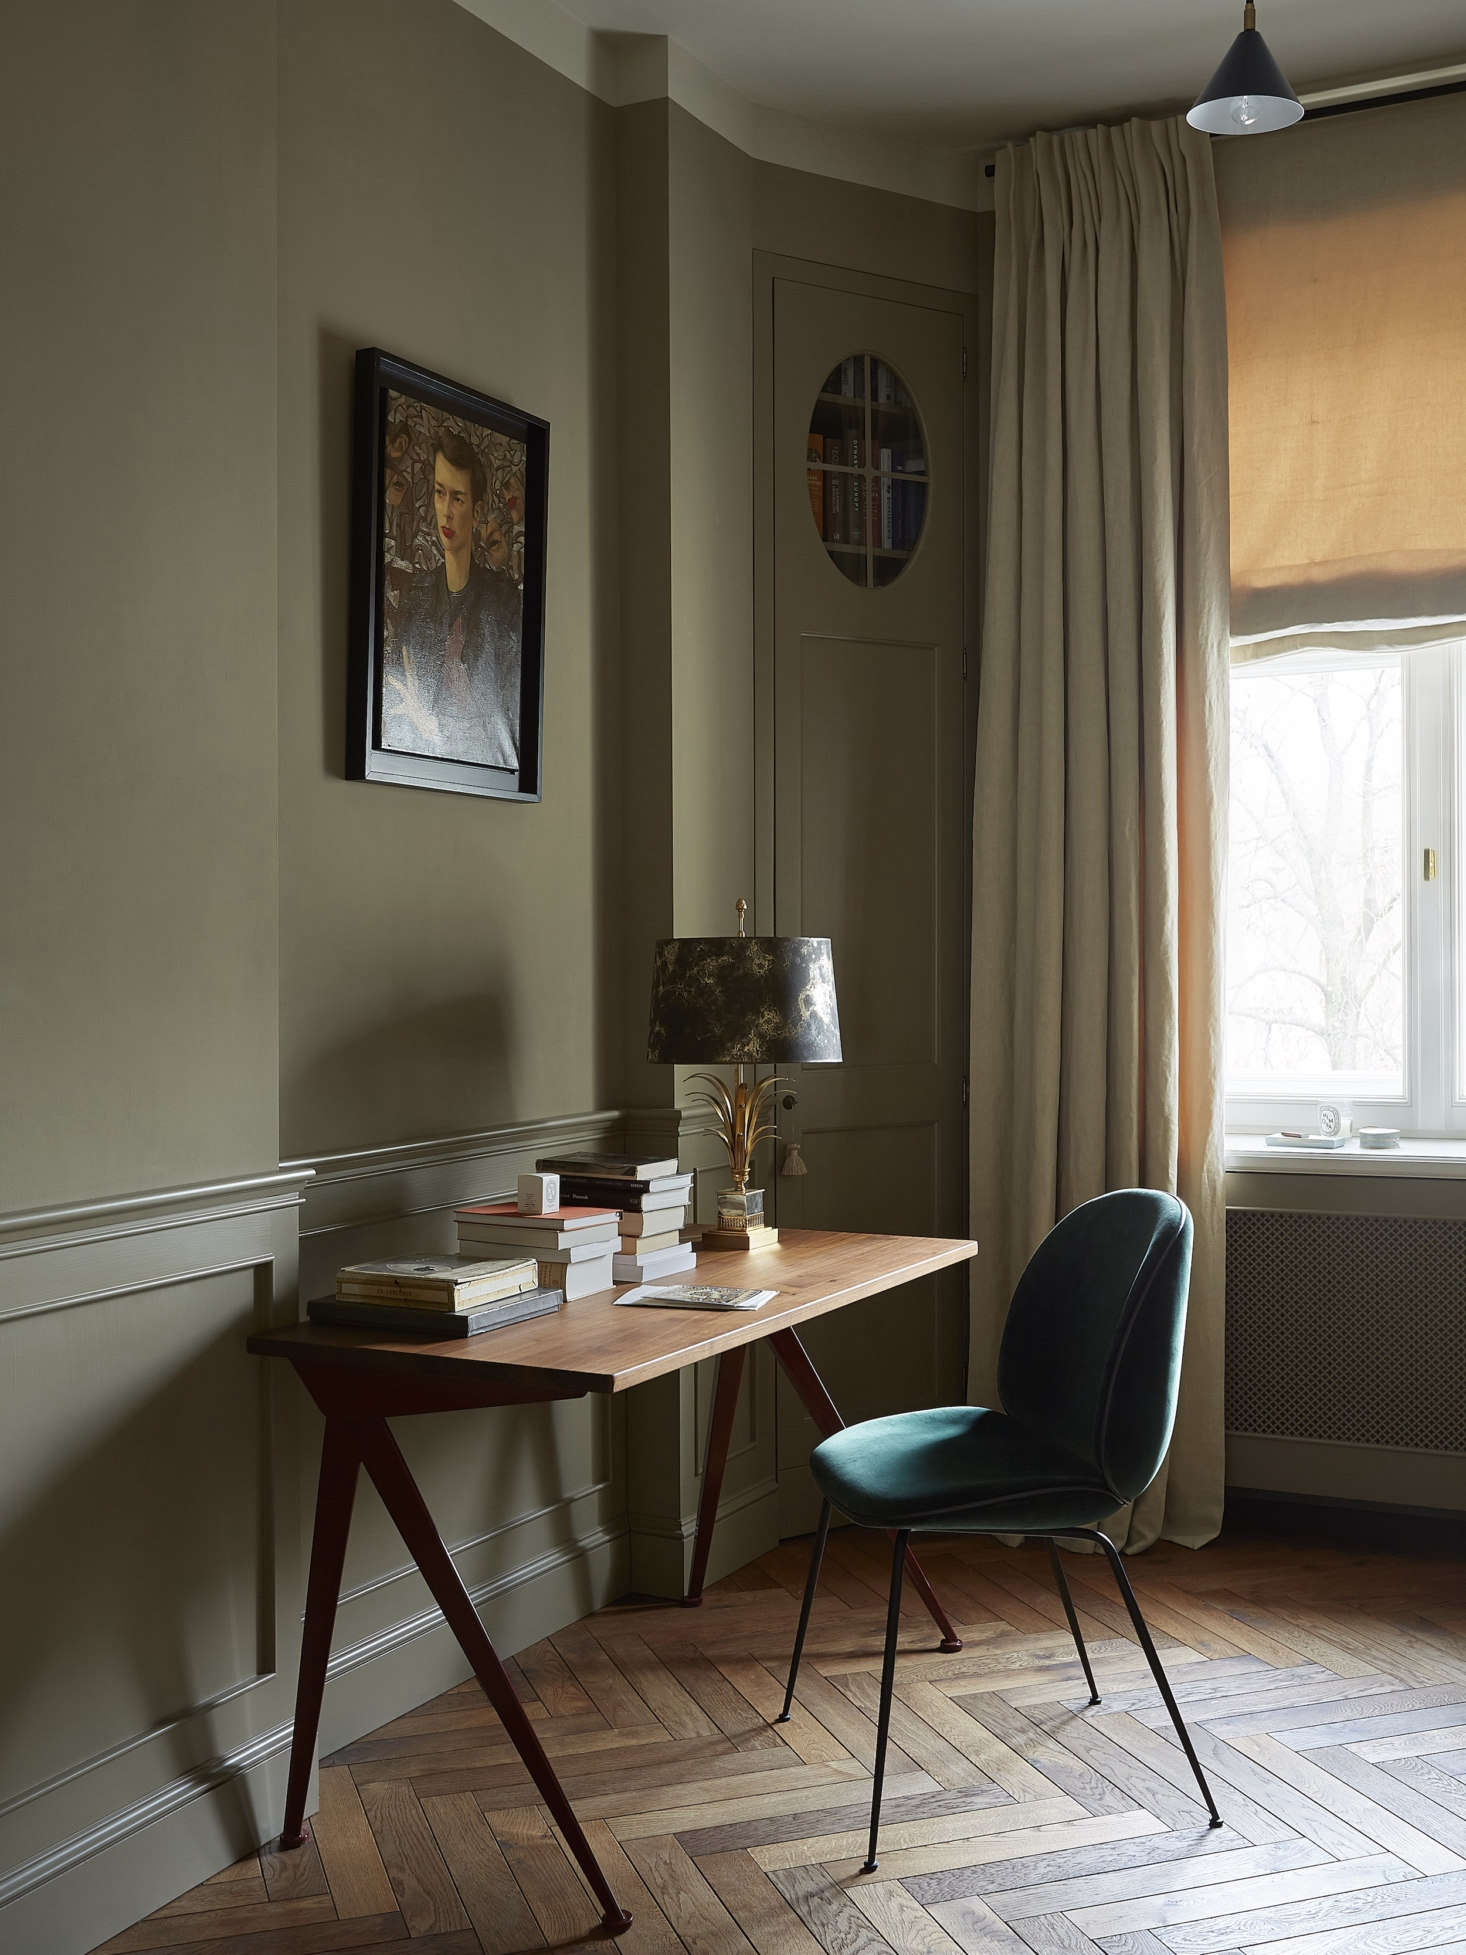 Another Farrow & Ball color, a moody Mouse's Back, was used in this office by Colombe Design. Photograph by Kasia Gatkowska, courtesy of Colombe Design, from Creative Flow: A Novelist&#8